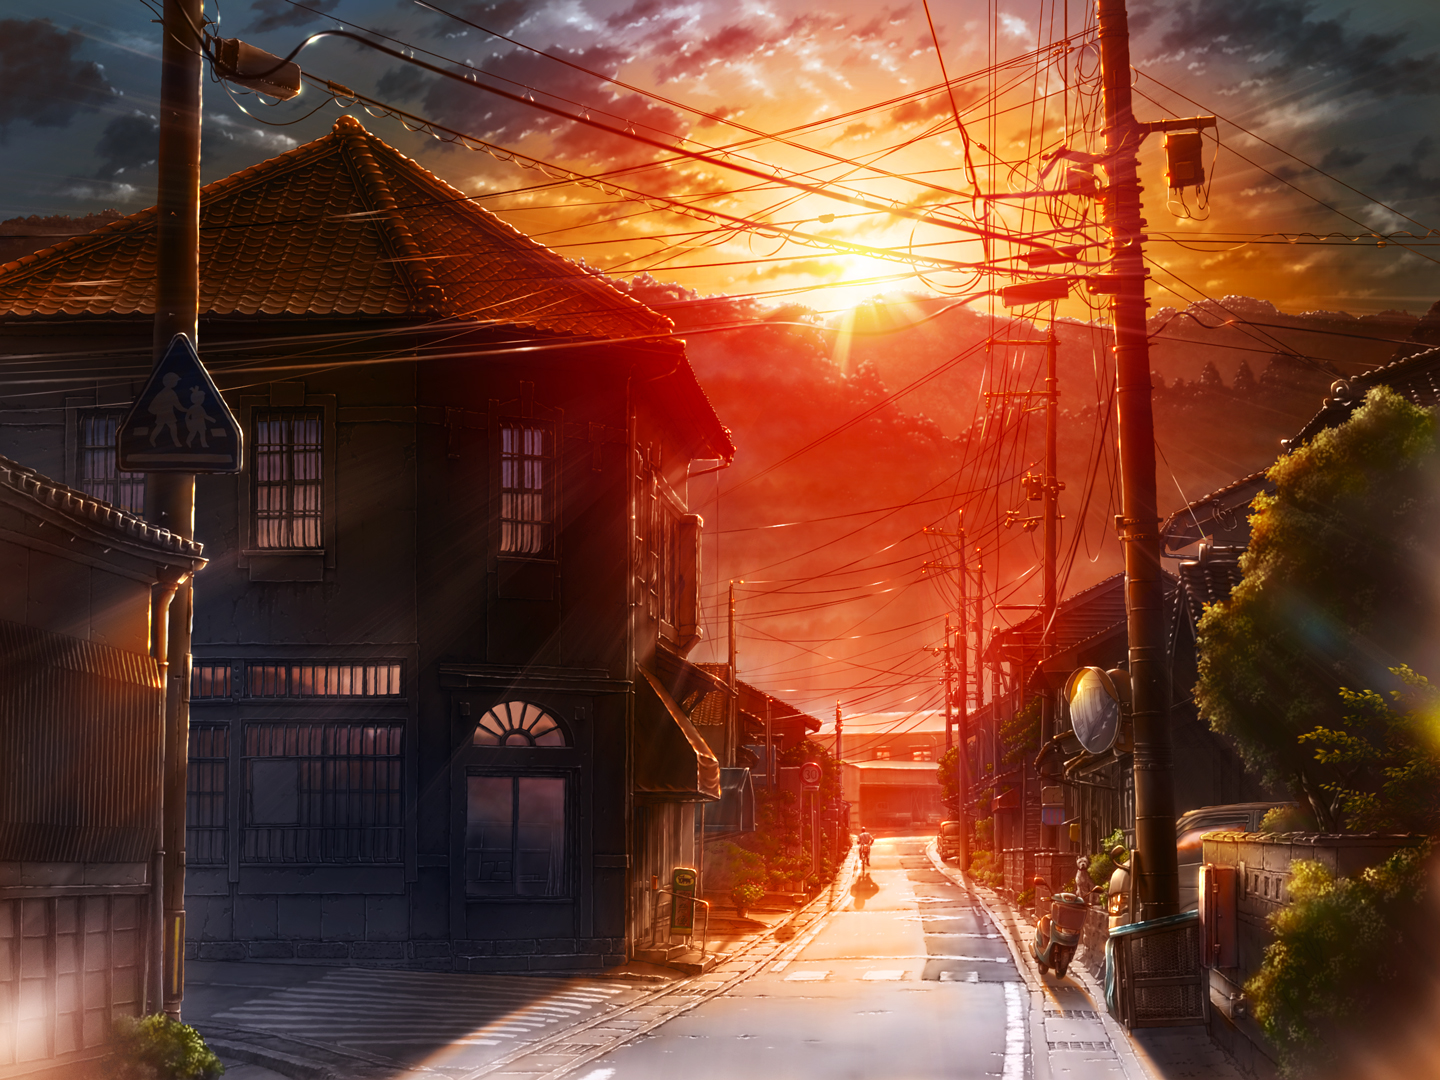 House (Anime Background)